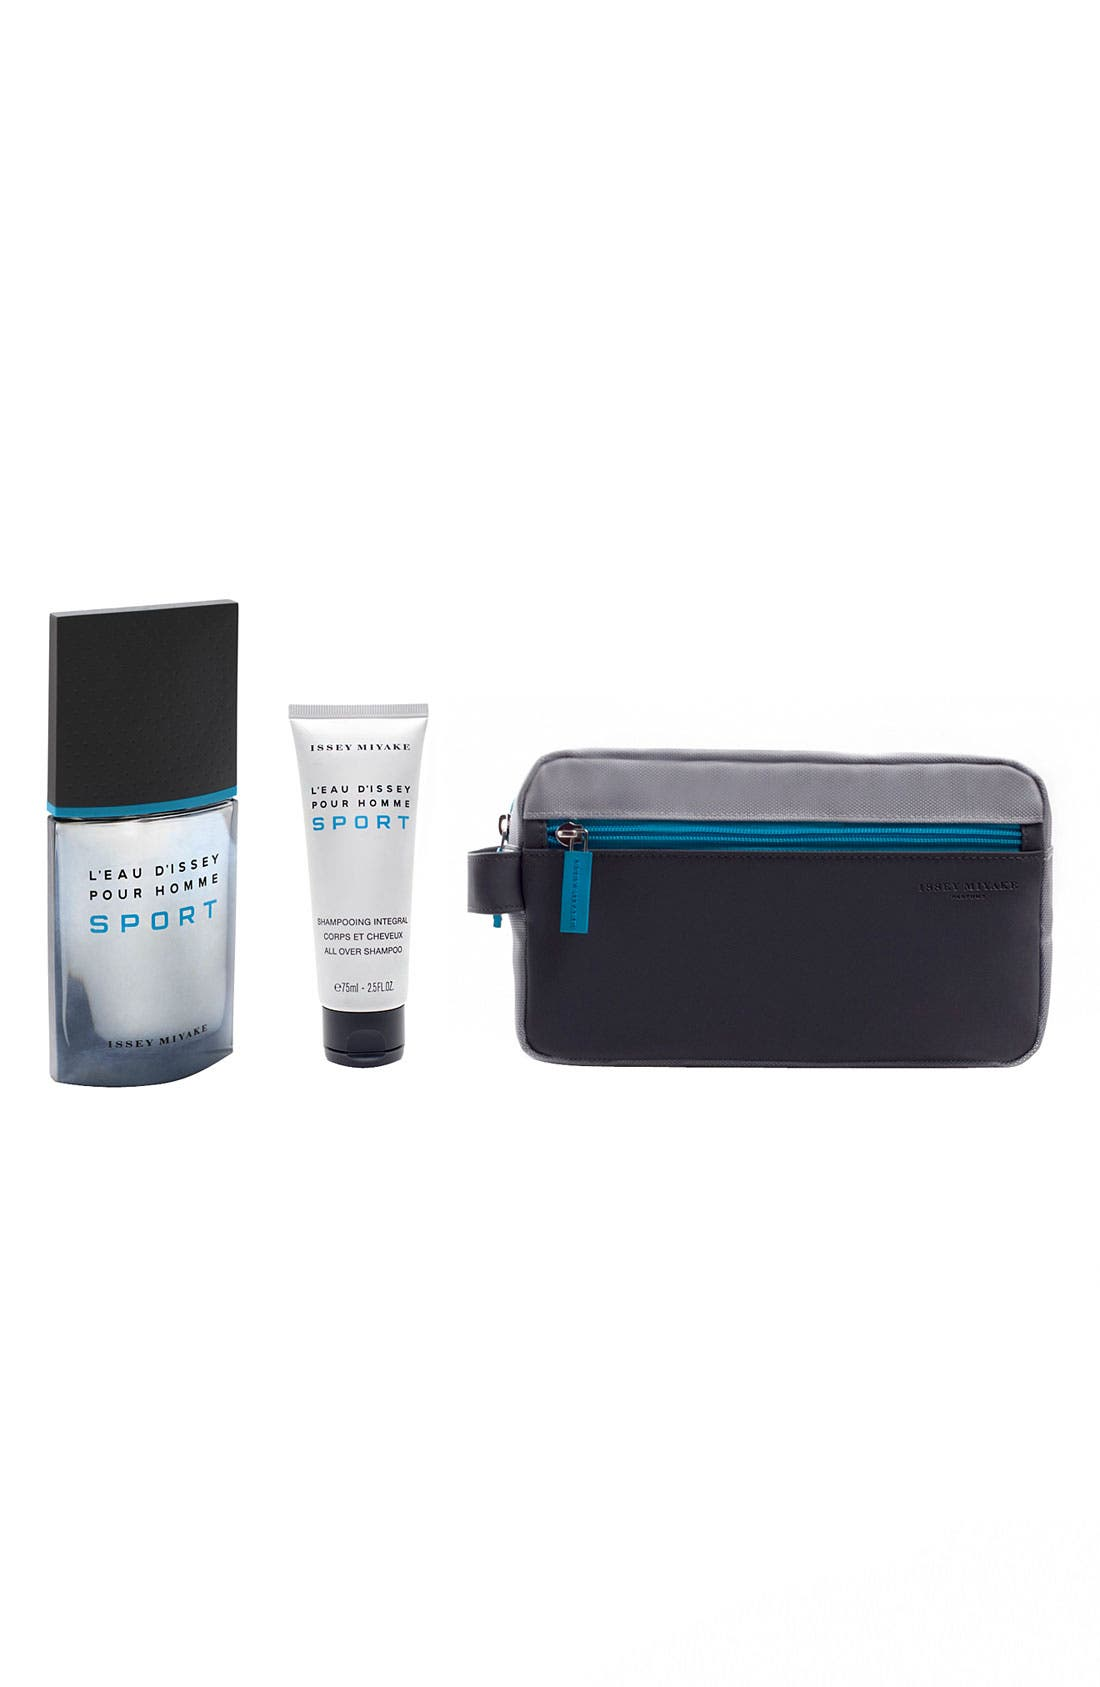 Alternate Image 1 Selected - Issey Miyake 'L'Eau d'Issey pour Homme Sport' Gift Set